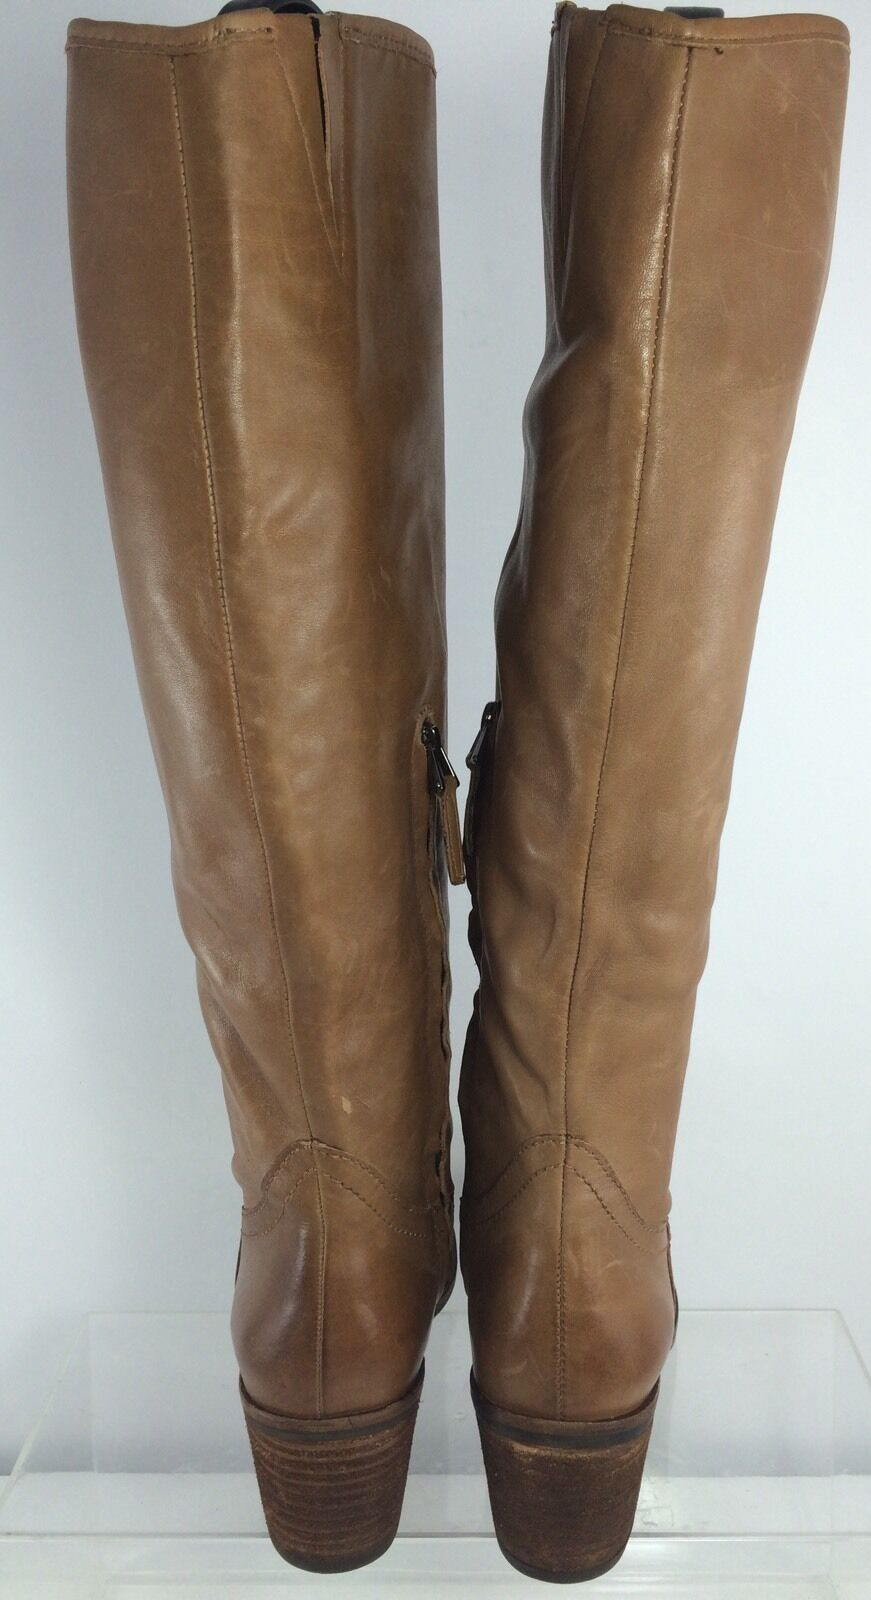 Sam Edelman Womens Brown Leather Knee Boots Boots Boots 6.5 261619